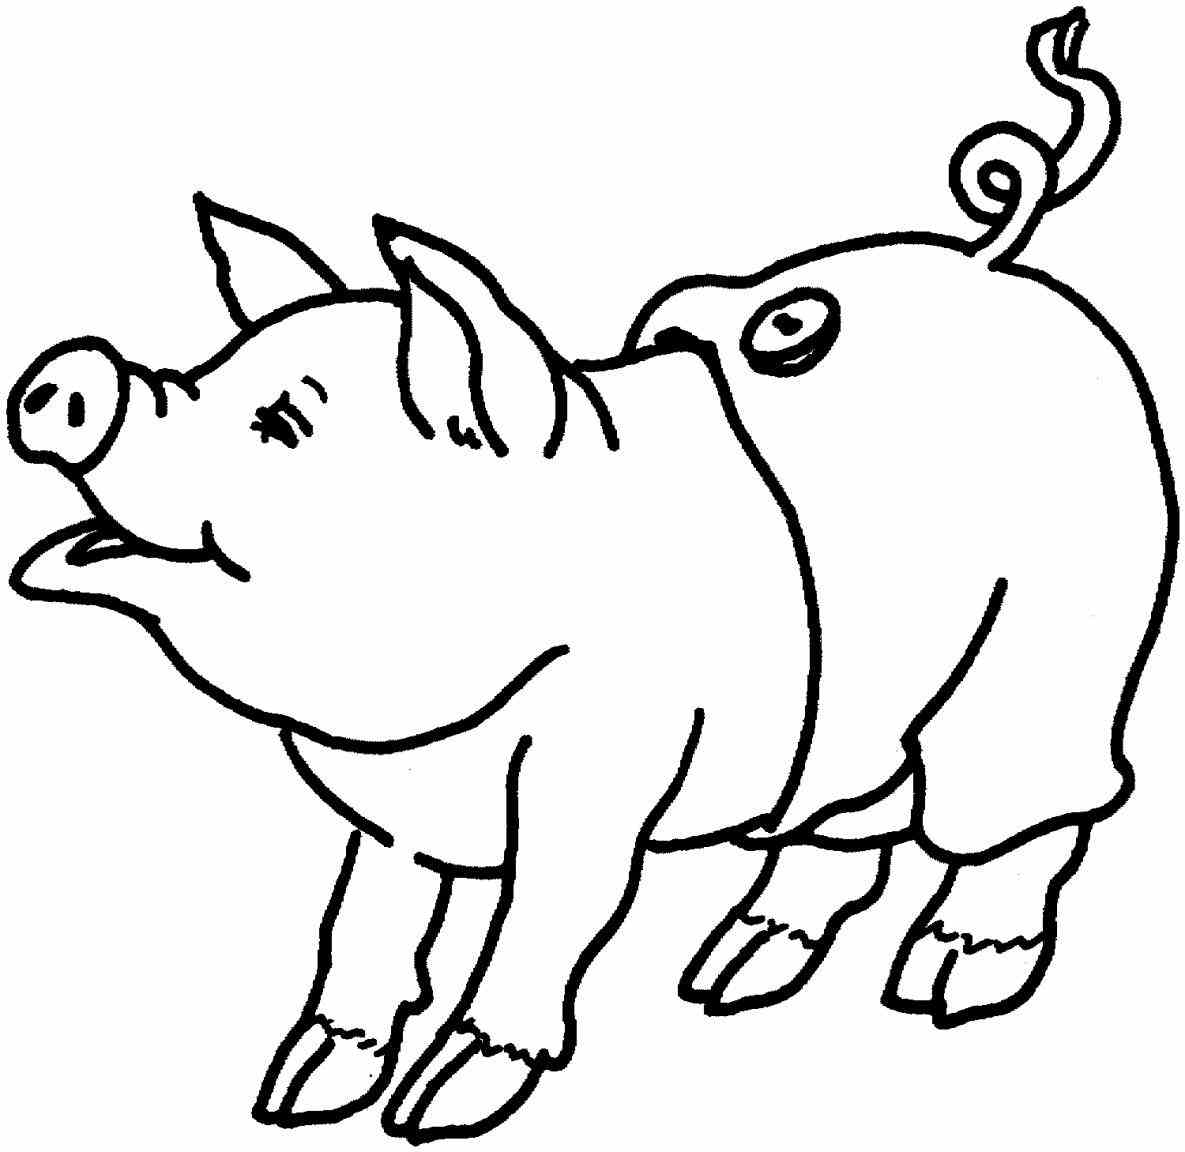 1185x1152 Cute Pig Coloring Pages Page Image Clipart Images